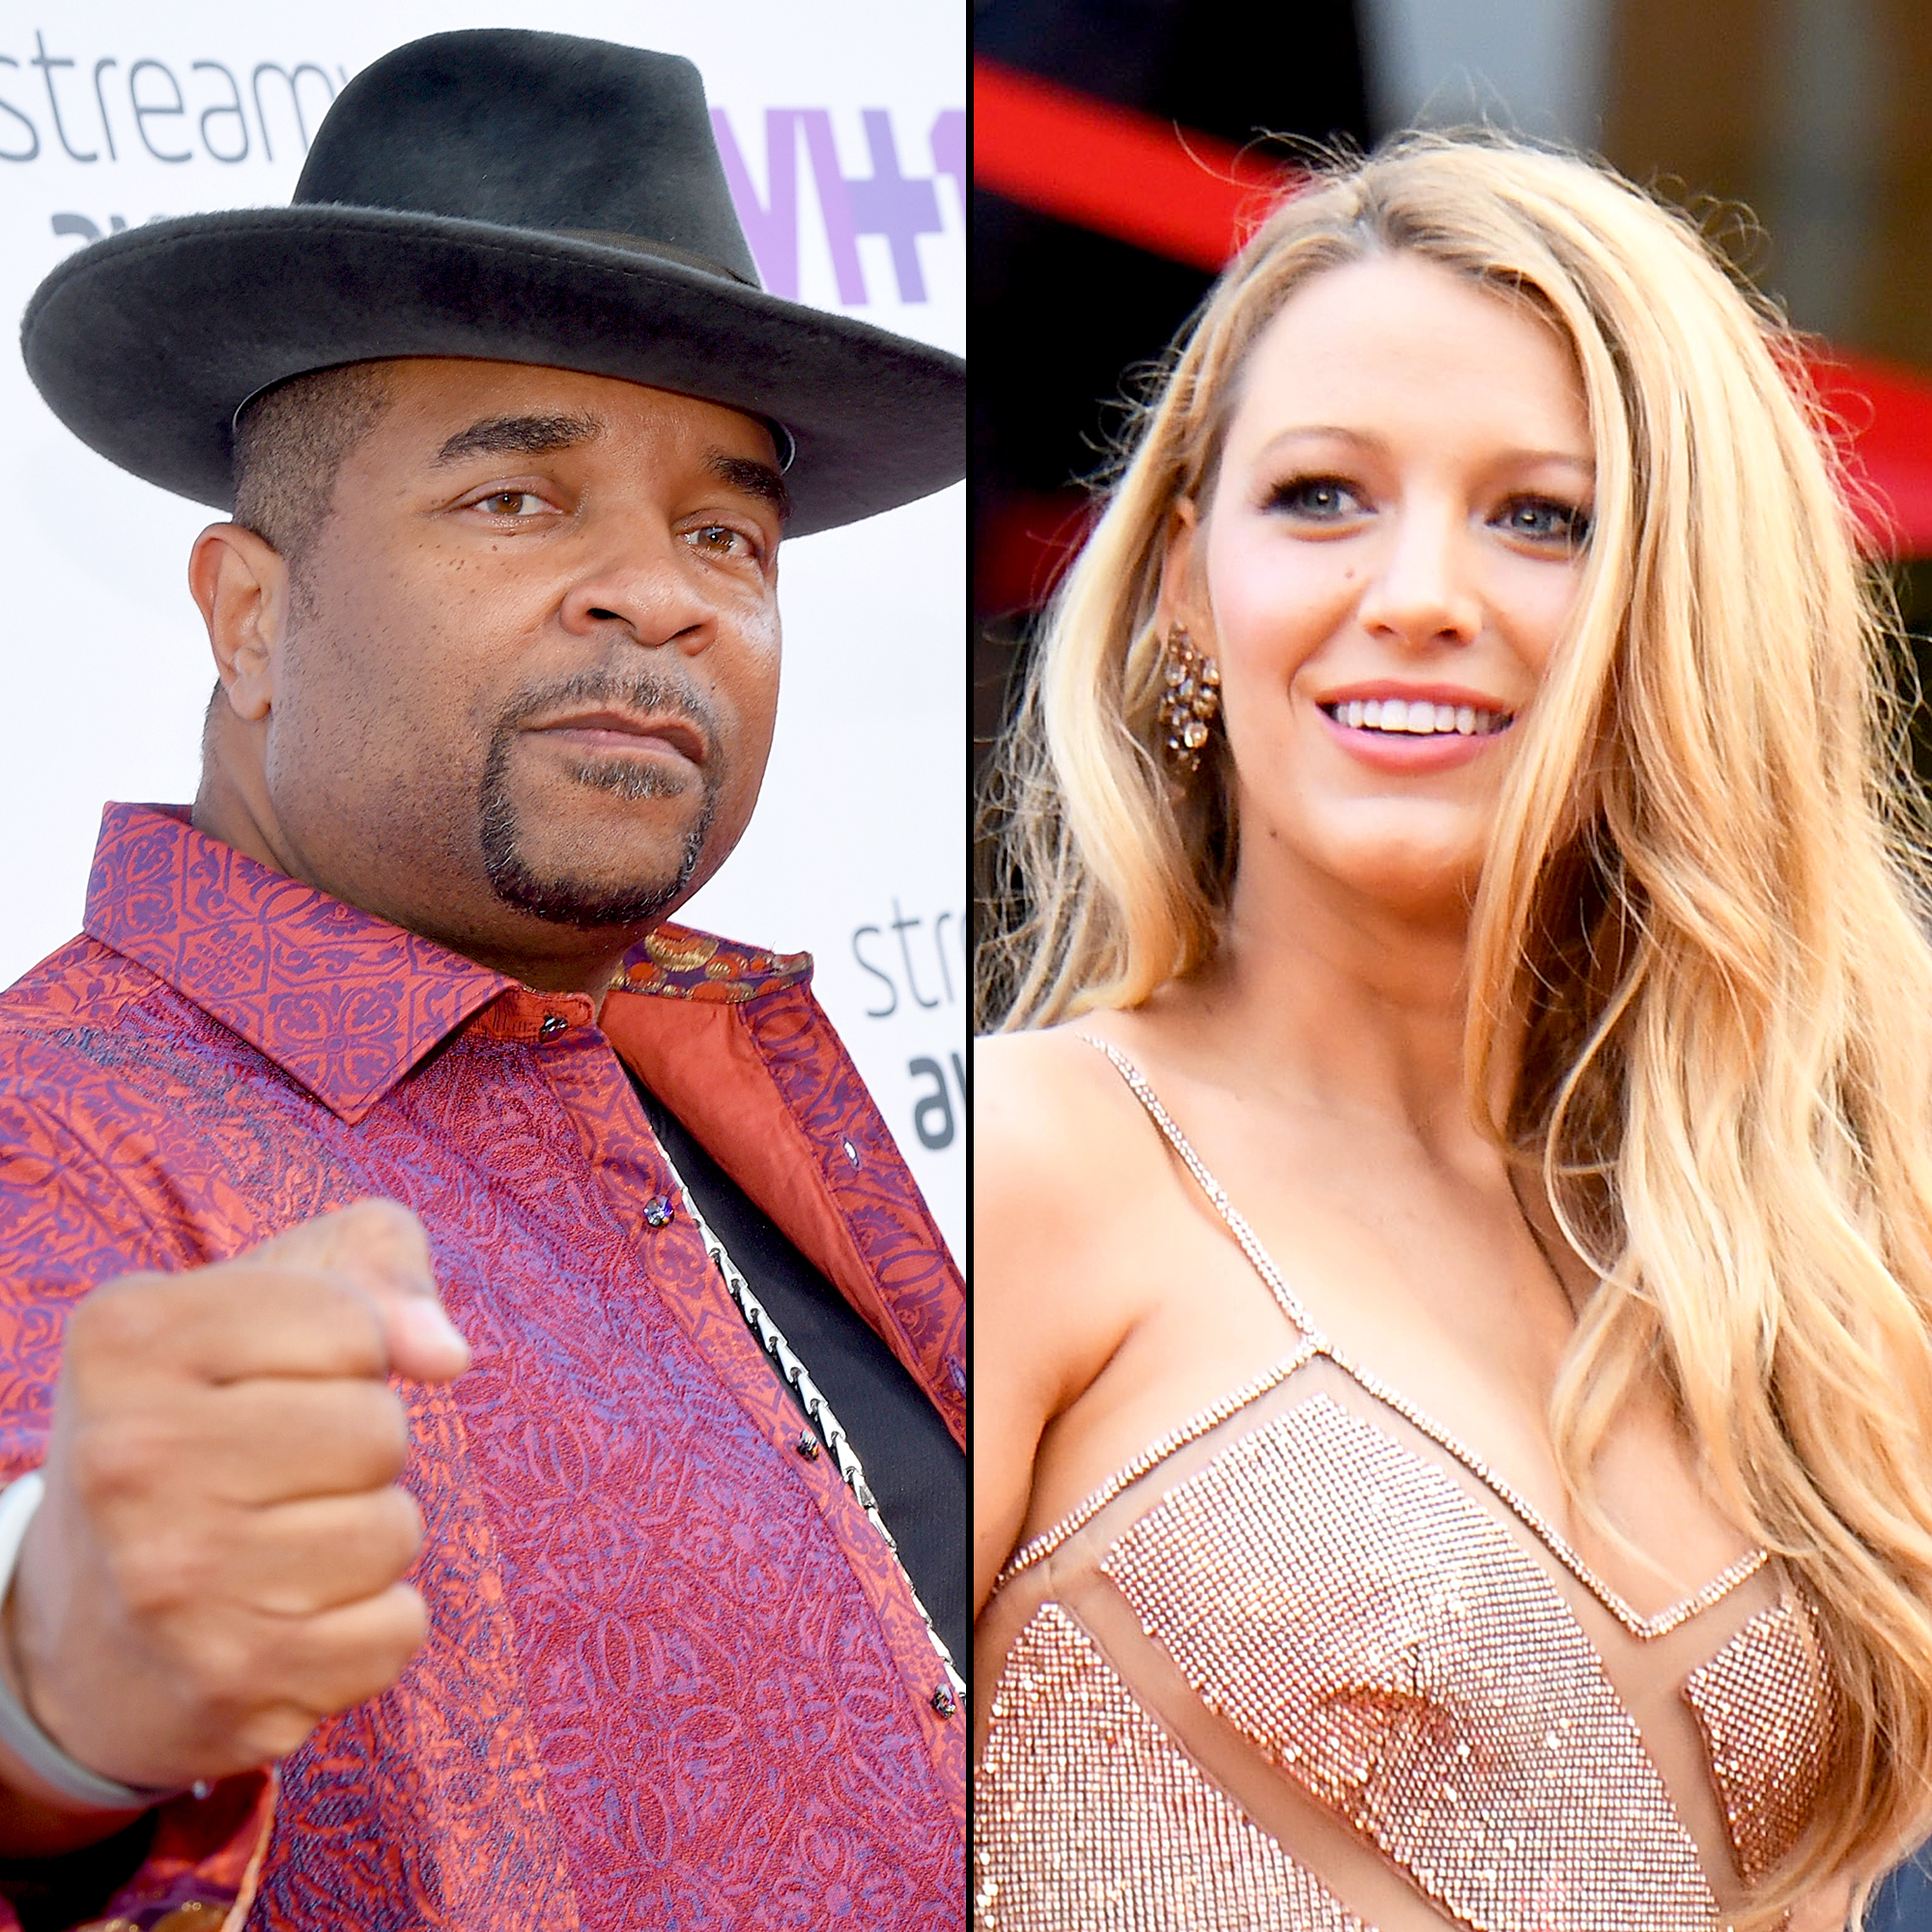 Sir Mix-a-Lot and Blake Lively